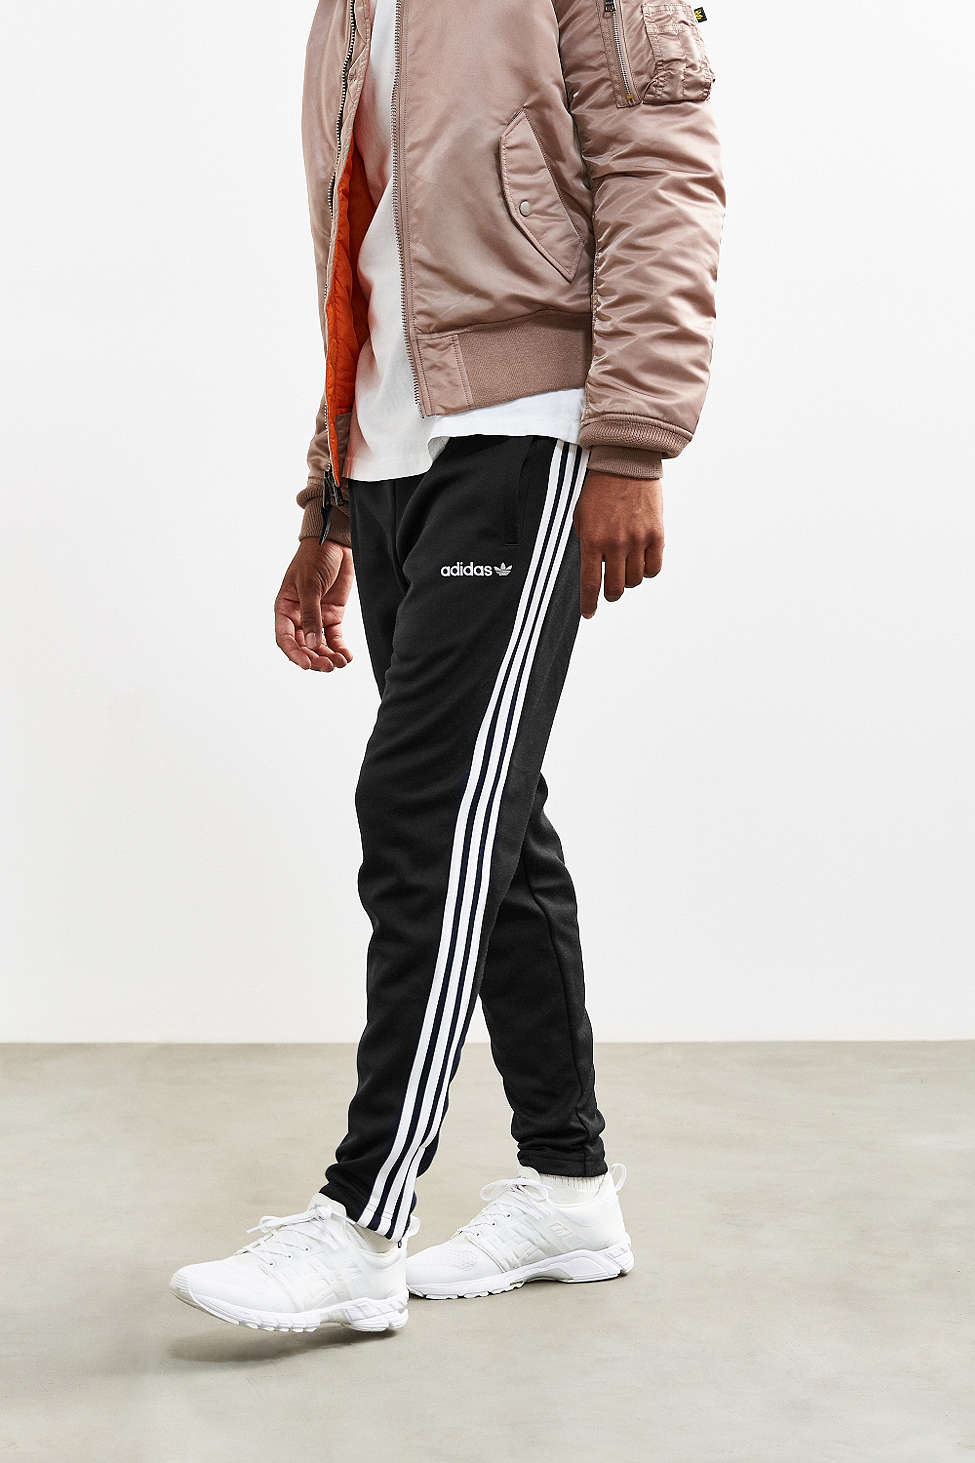 adidas-uo-fitted-track-pant-1